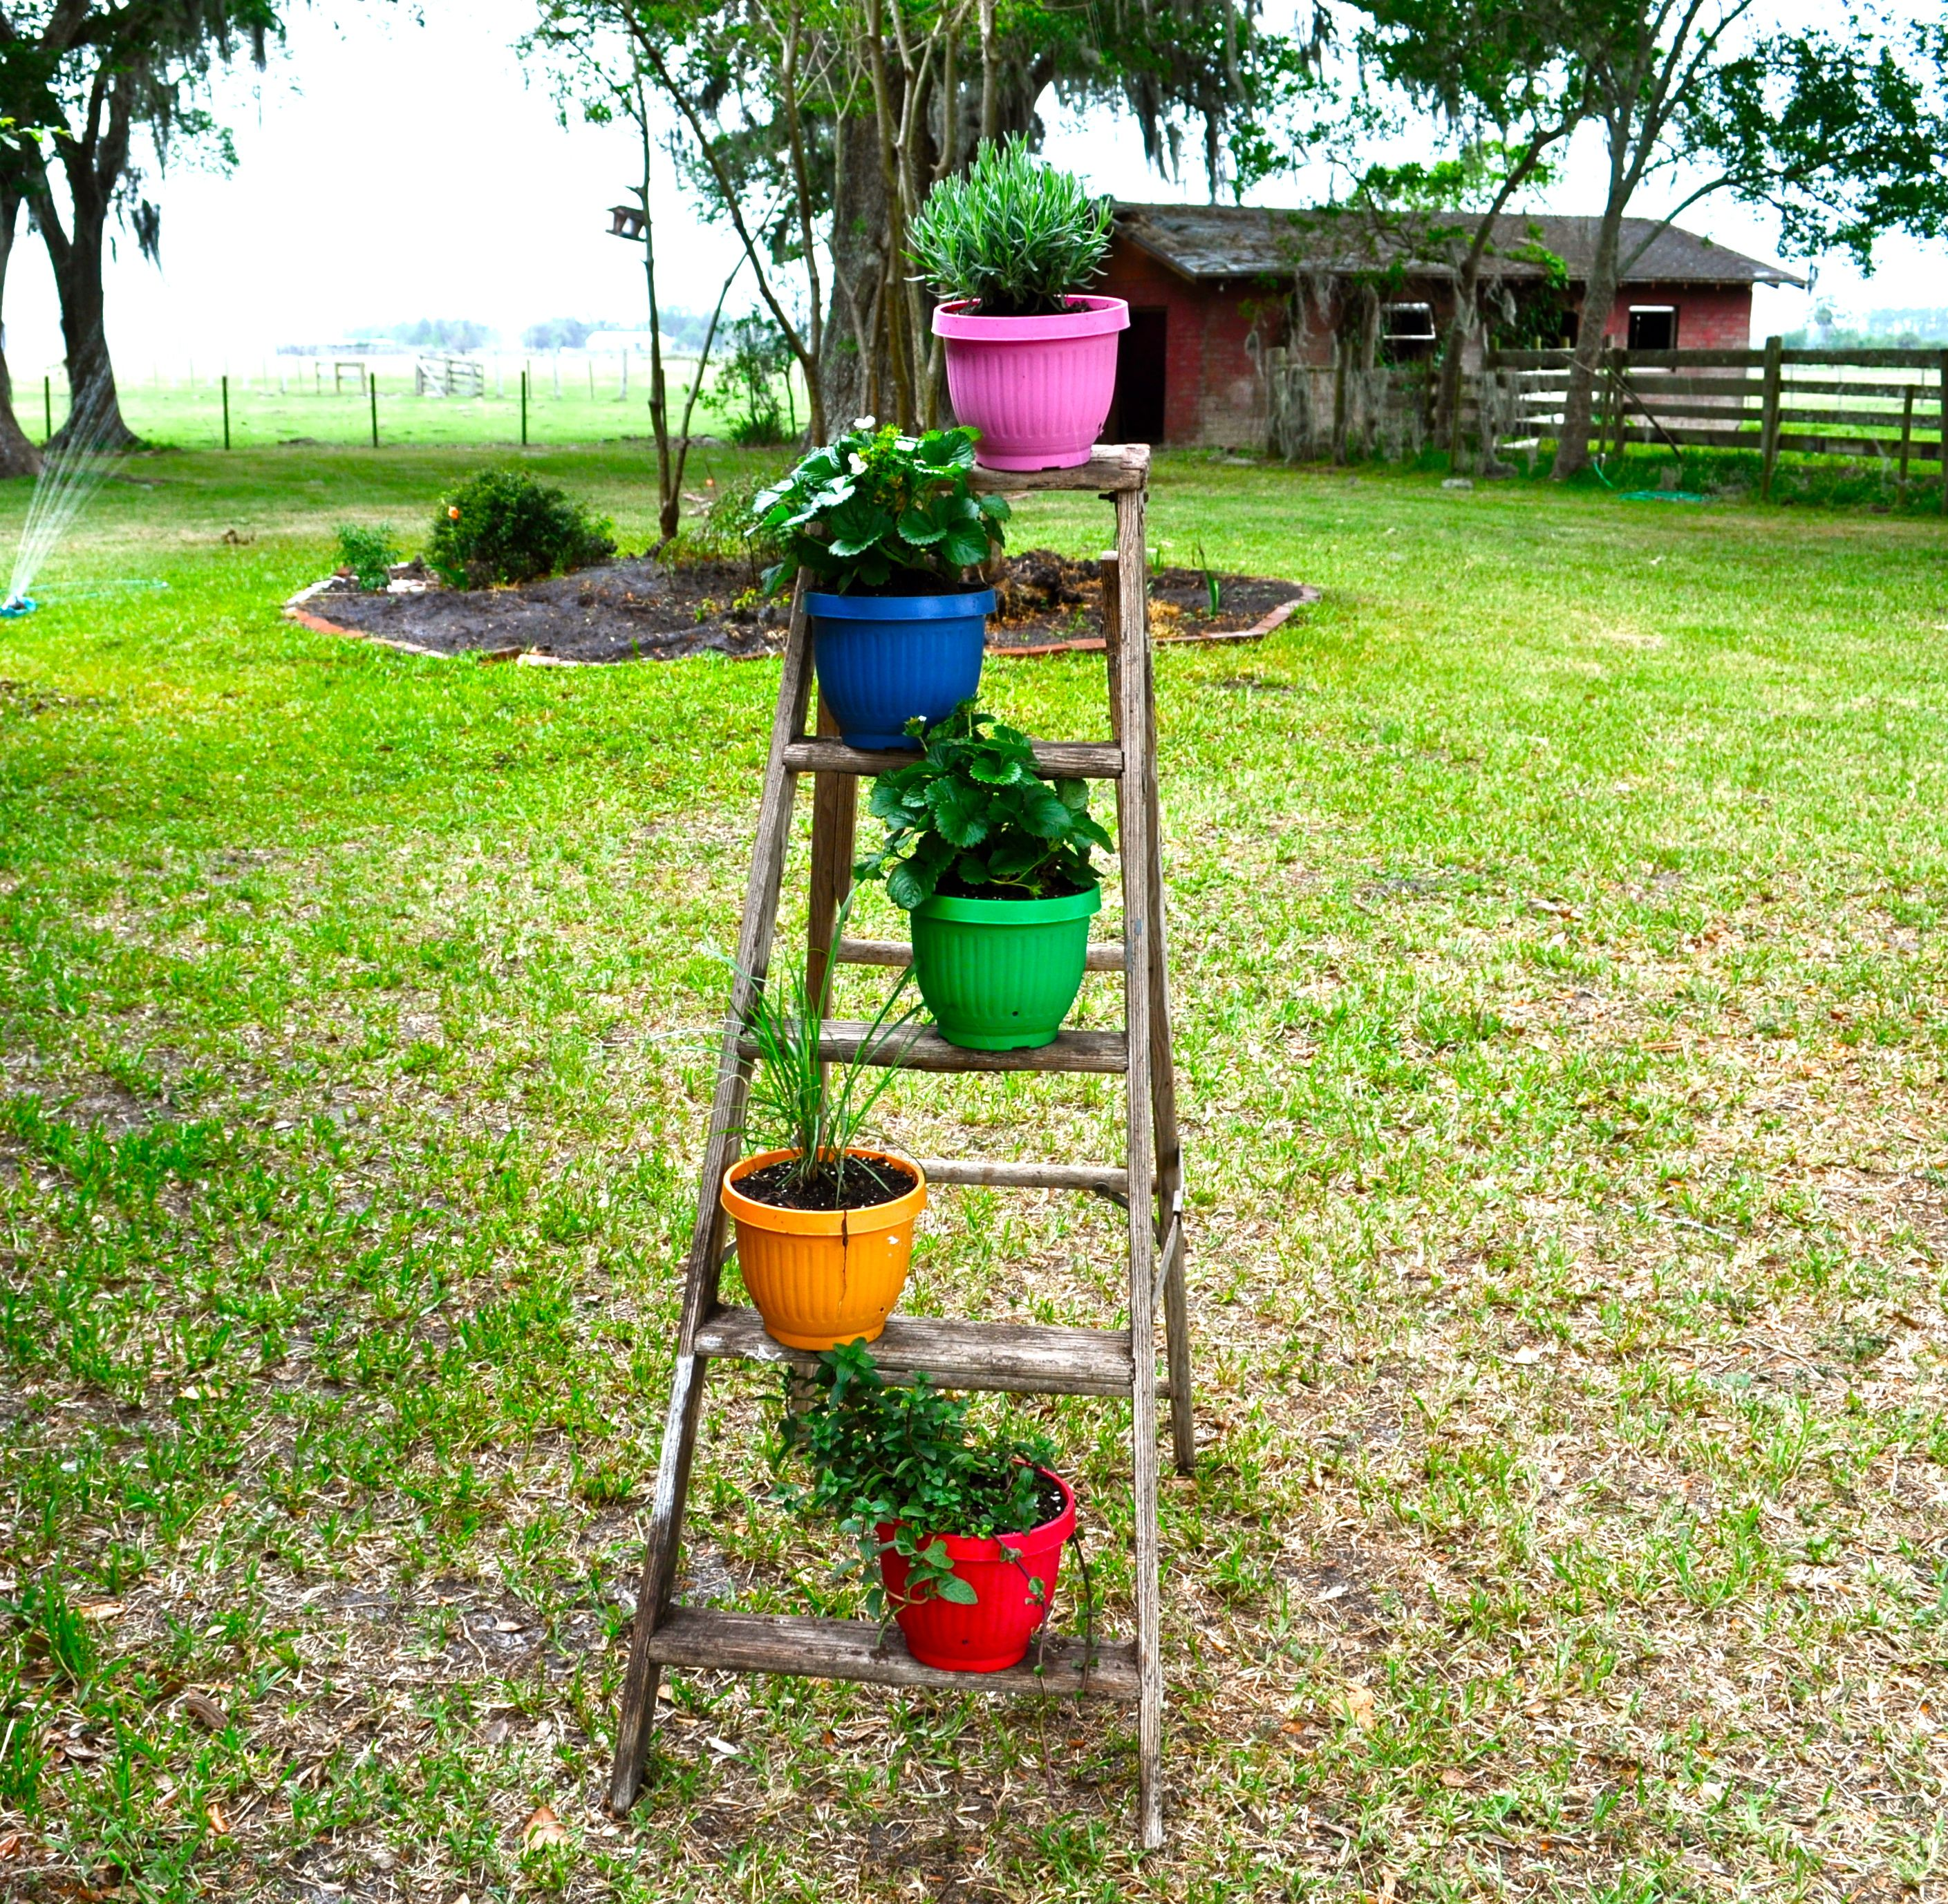 Super Simple Ideas For People Who Hate Yard Work: Ladder Planter...Super Easy & CHEAP To Make!